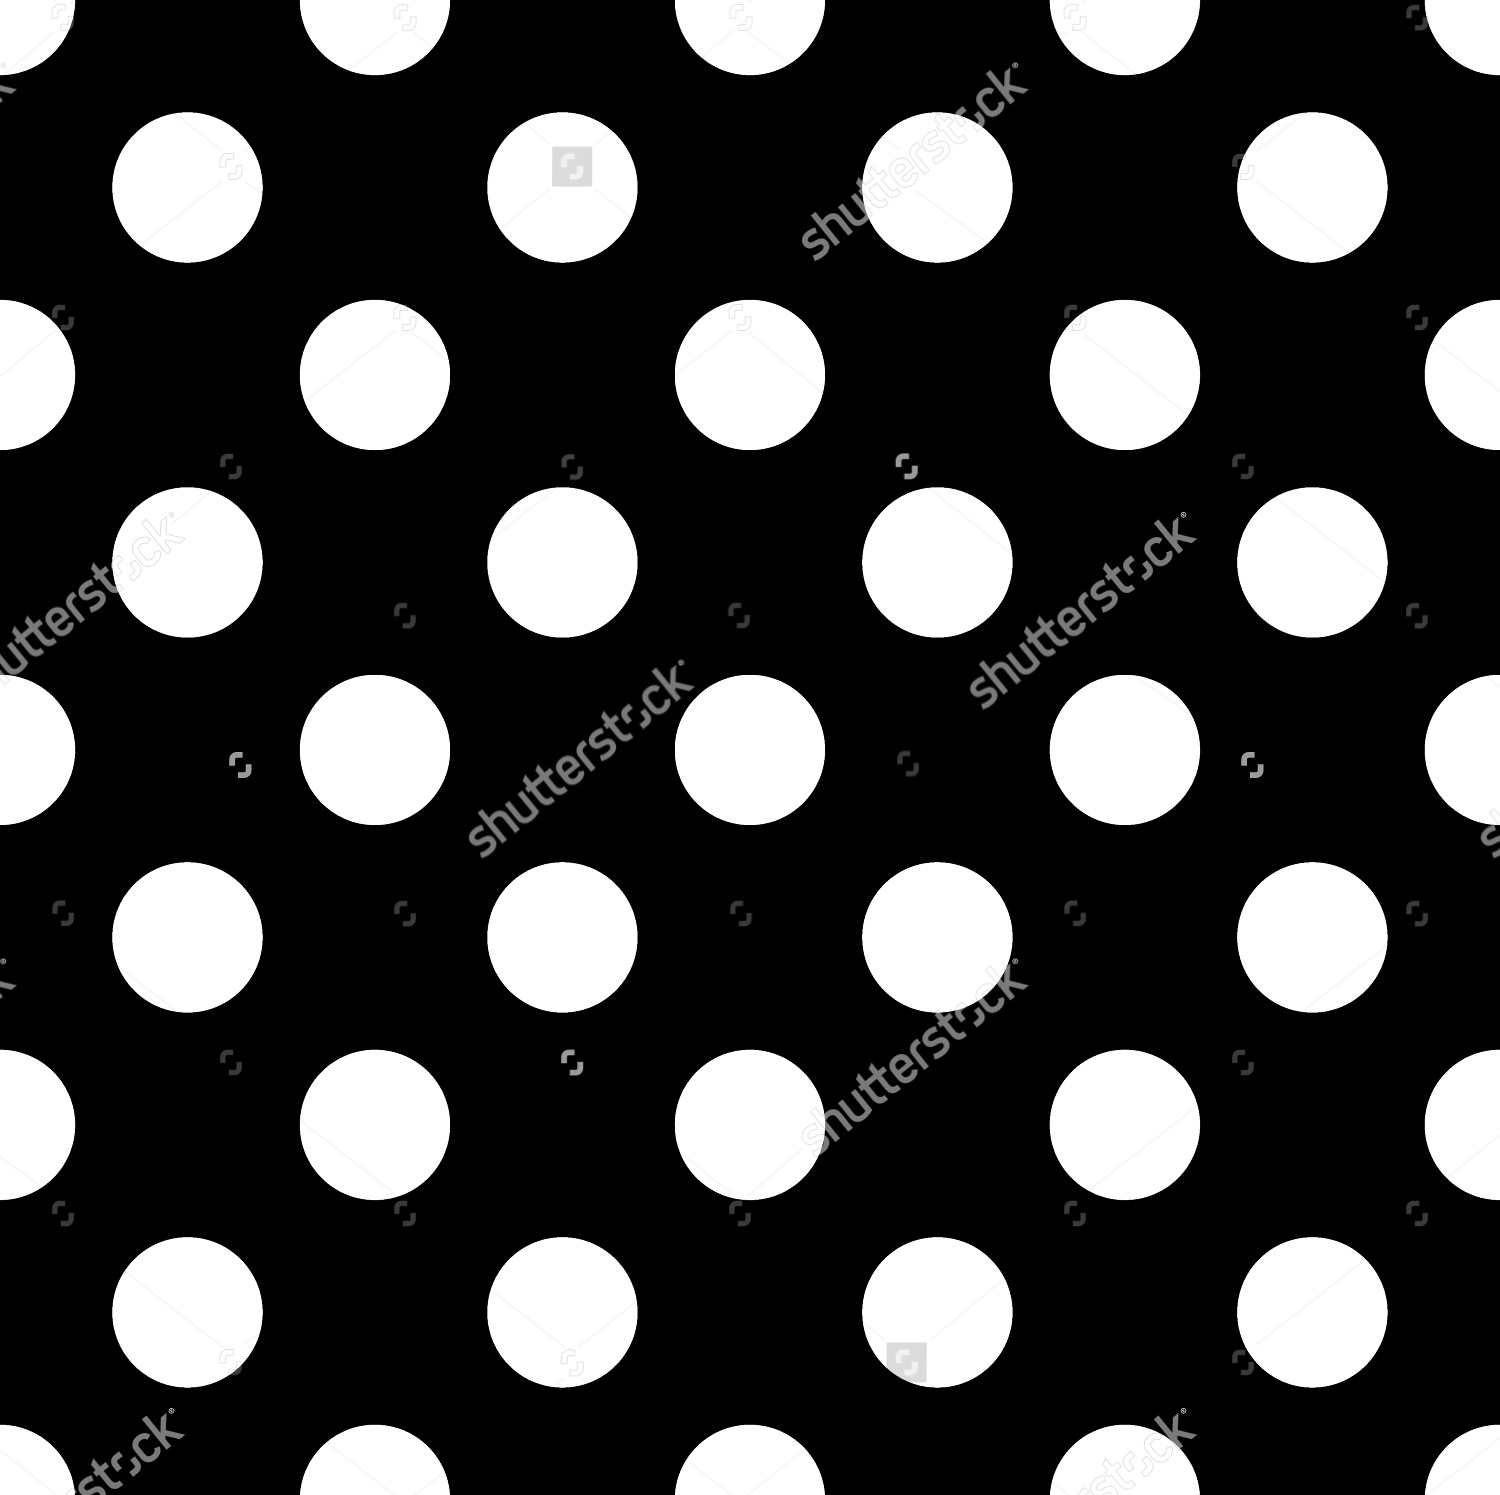 Polka Dot black and white background